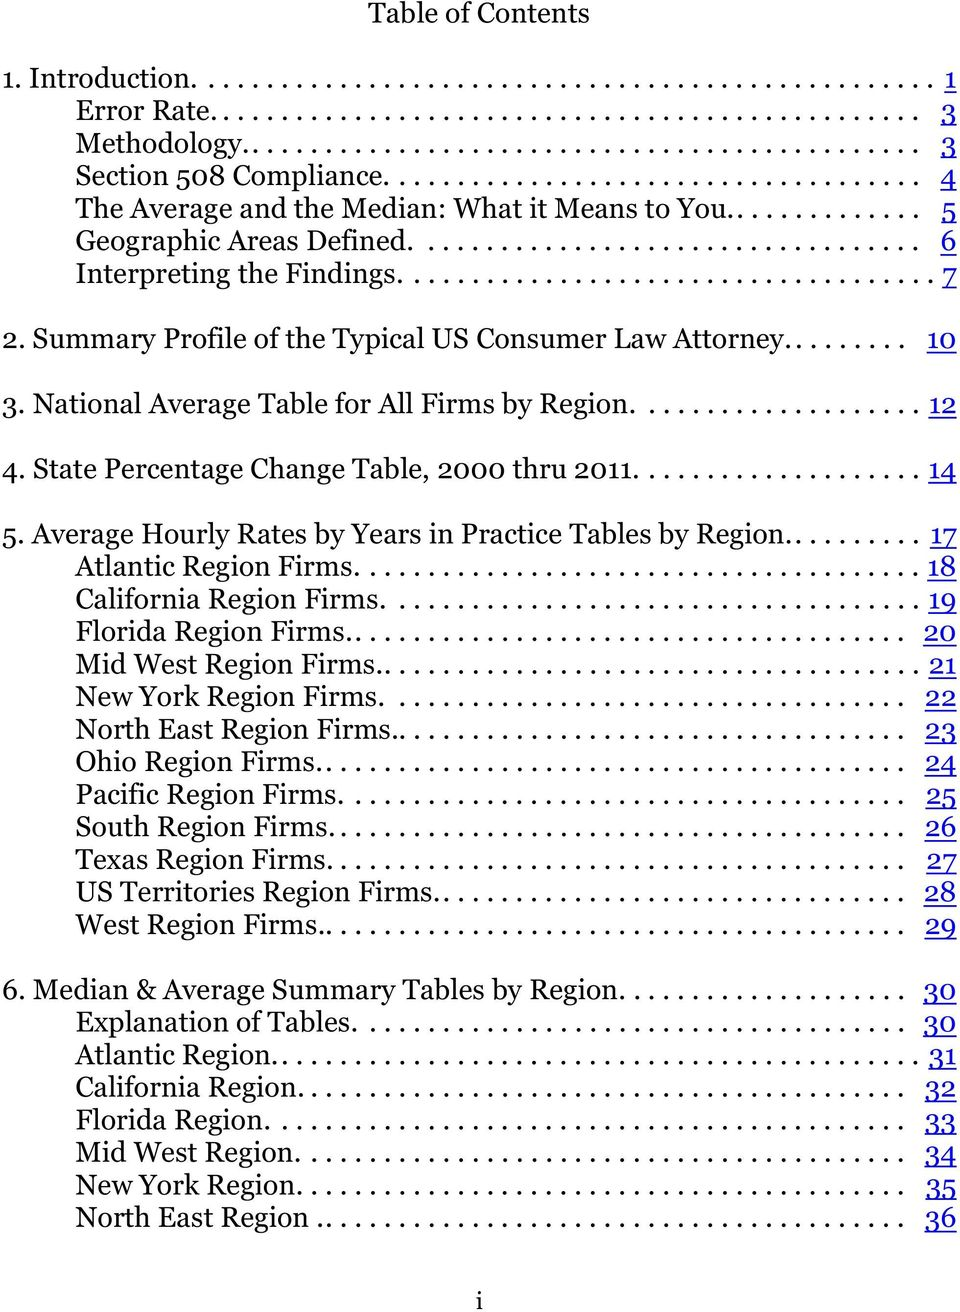 Summary Profile of the Typical US Consumer Law Attorney......... 10 3. National Average Table for All Firms by Region.................... 12 4. State Percentage Change Table, 2000 thru 2011.................... 14 5.